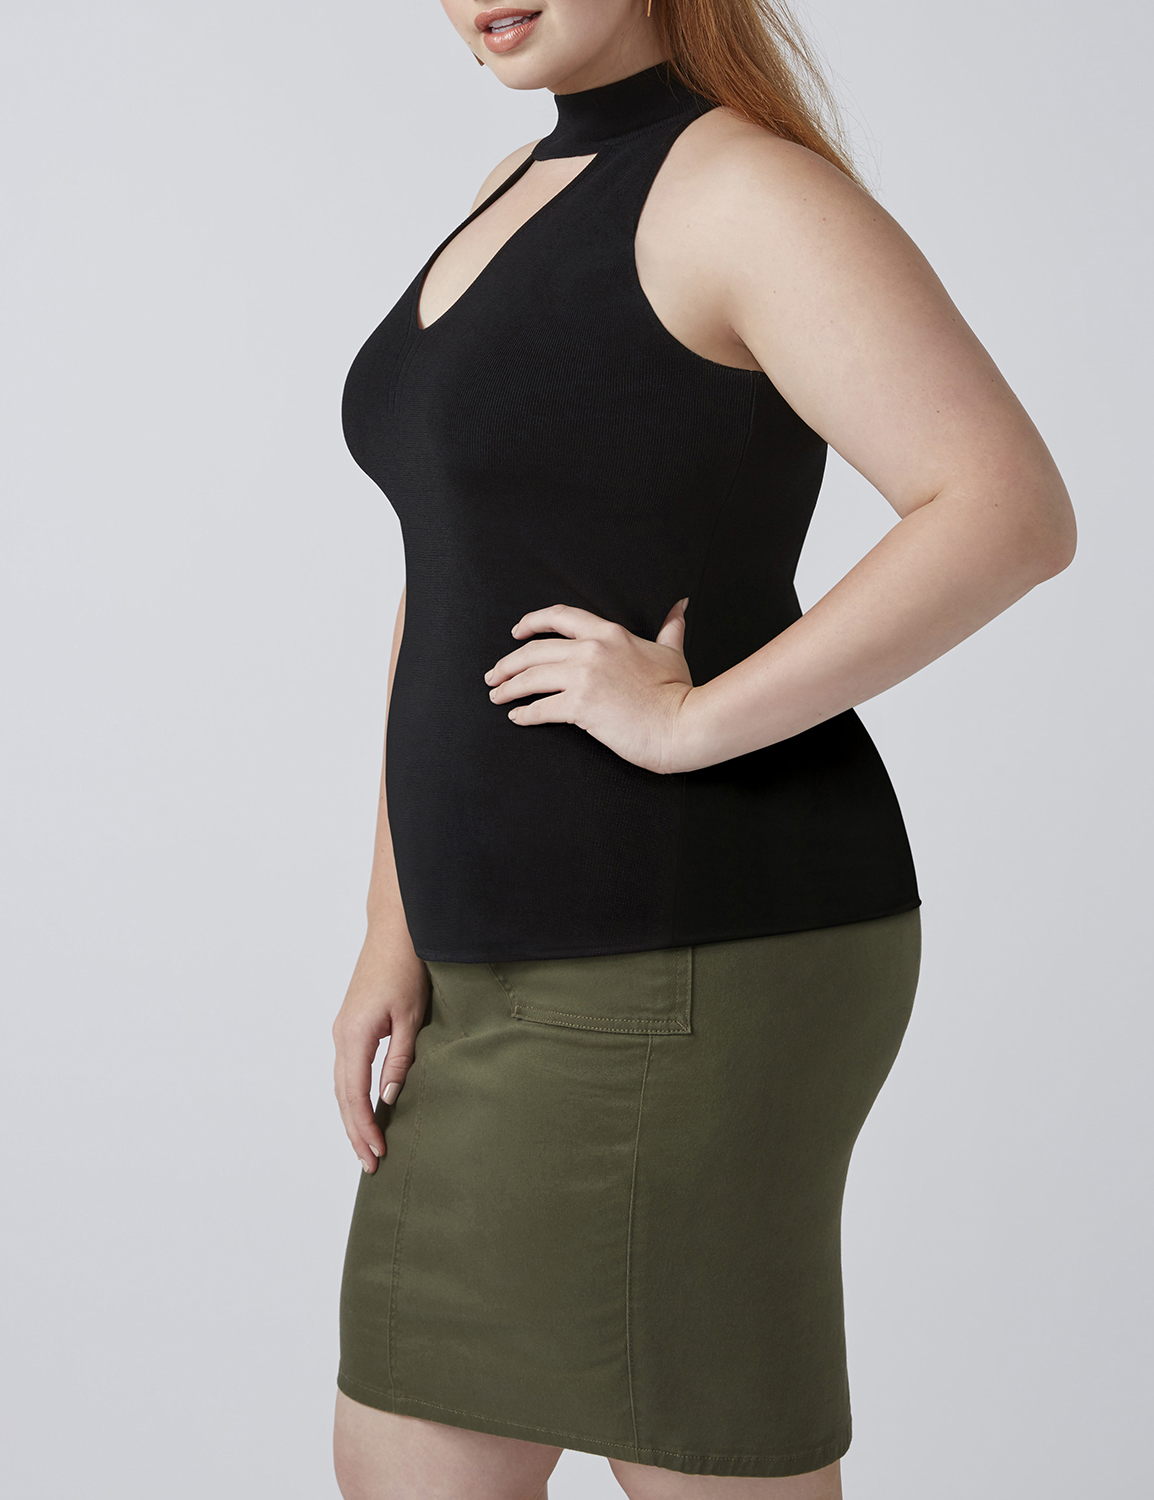 retouched fashion model in black tank top and military green skirt posing with hand on hip